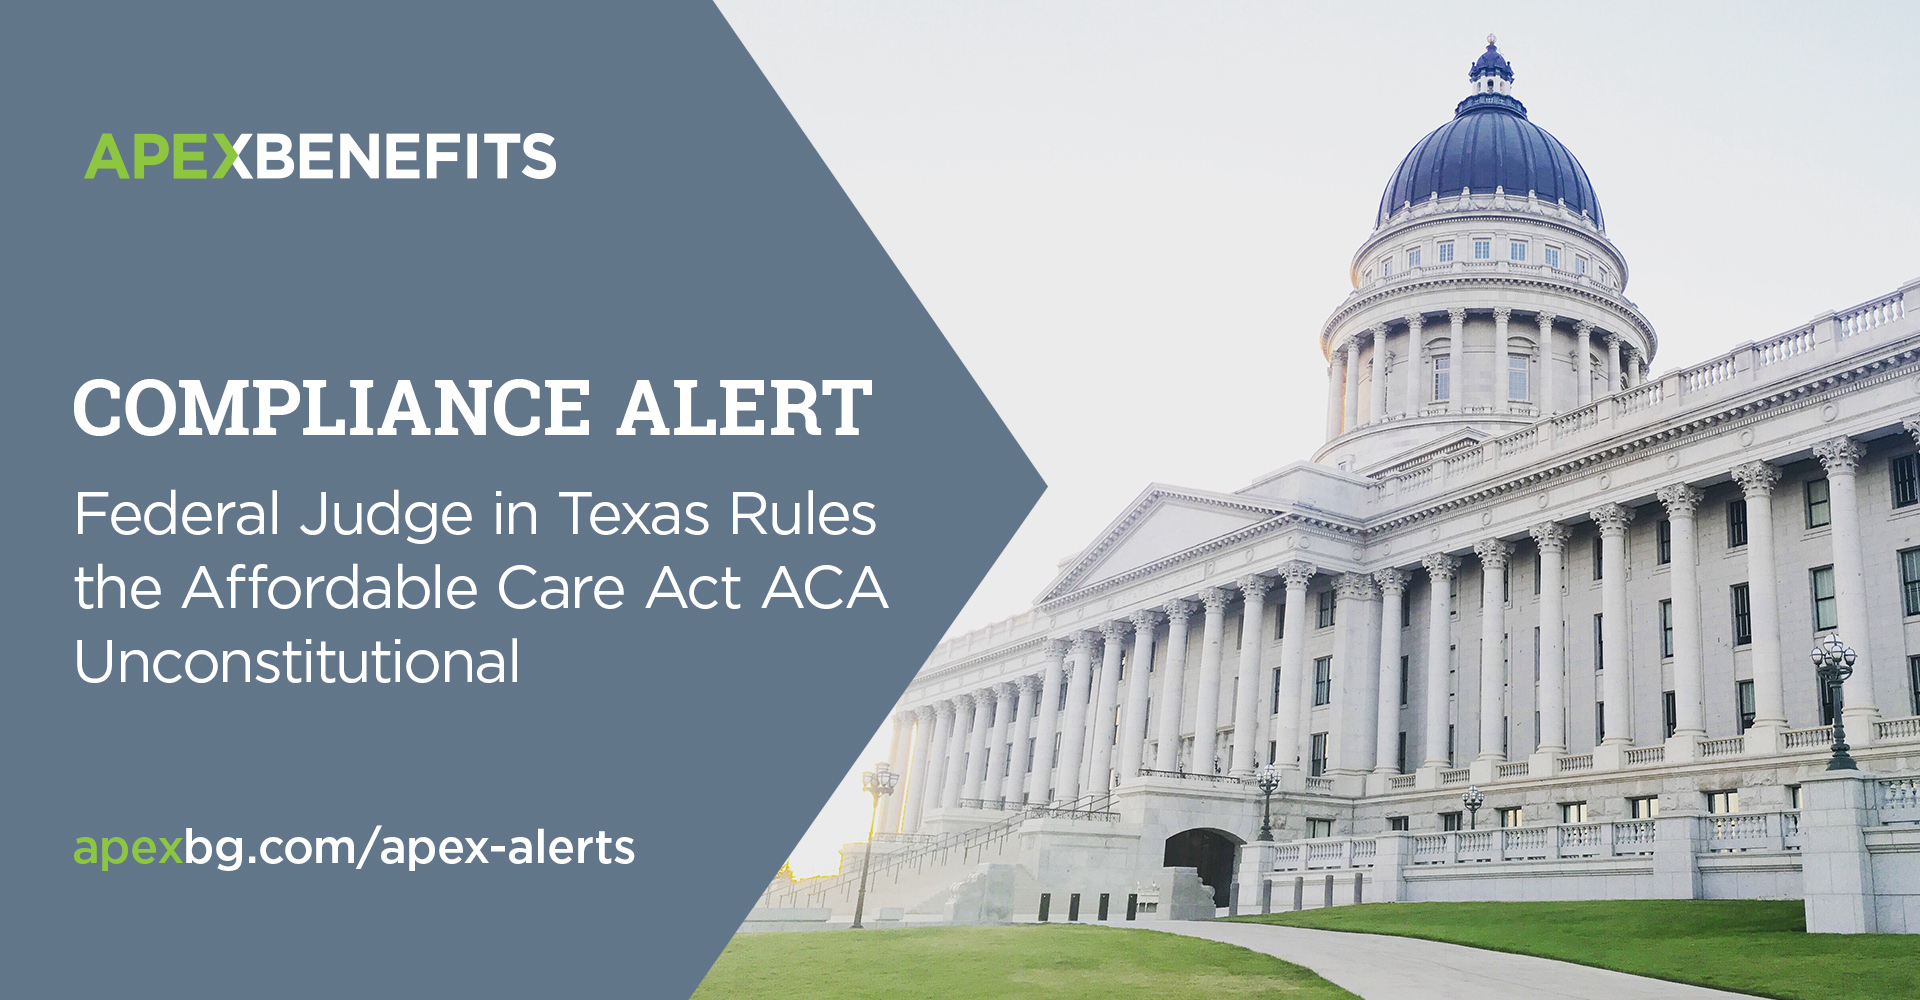 Compliance Alert: Federal Judge in Texas Rules the Affordable Care Act ACA Unconstitutional